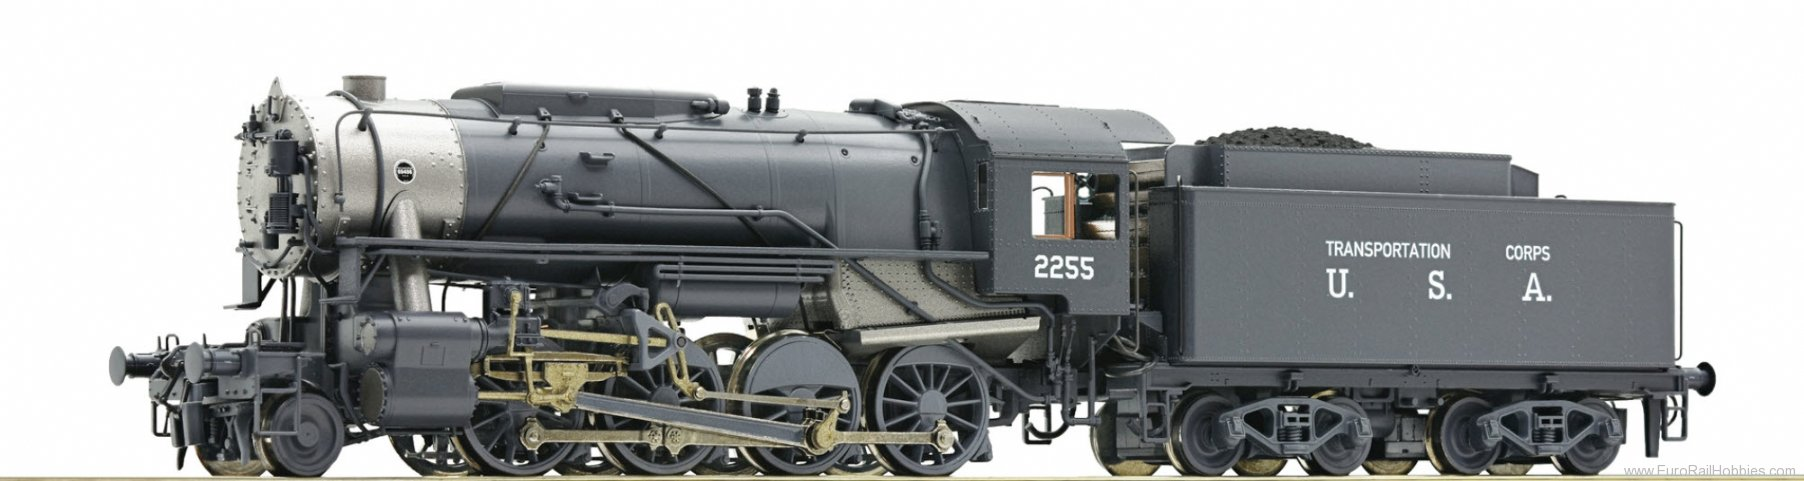 Roco 72151 Steam locomotive S 160, USTC (DCC w/Sound)